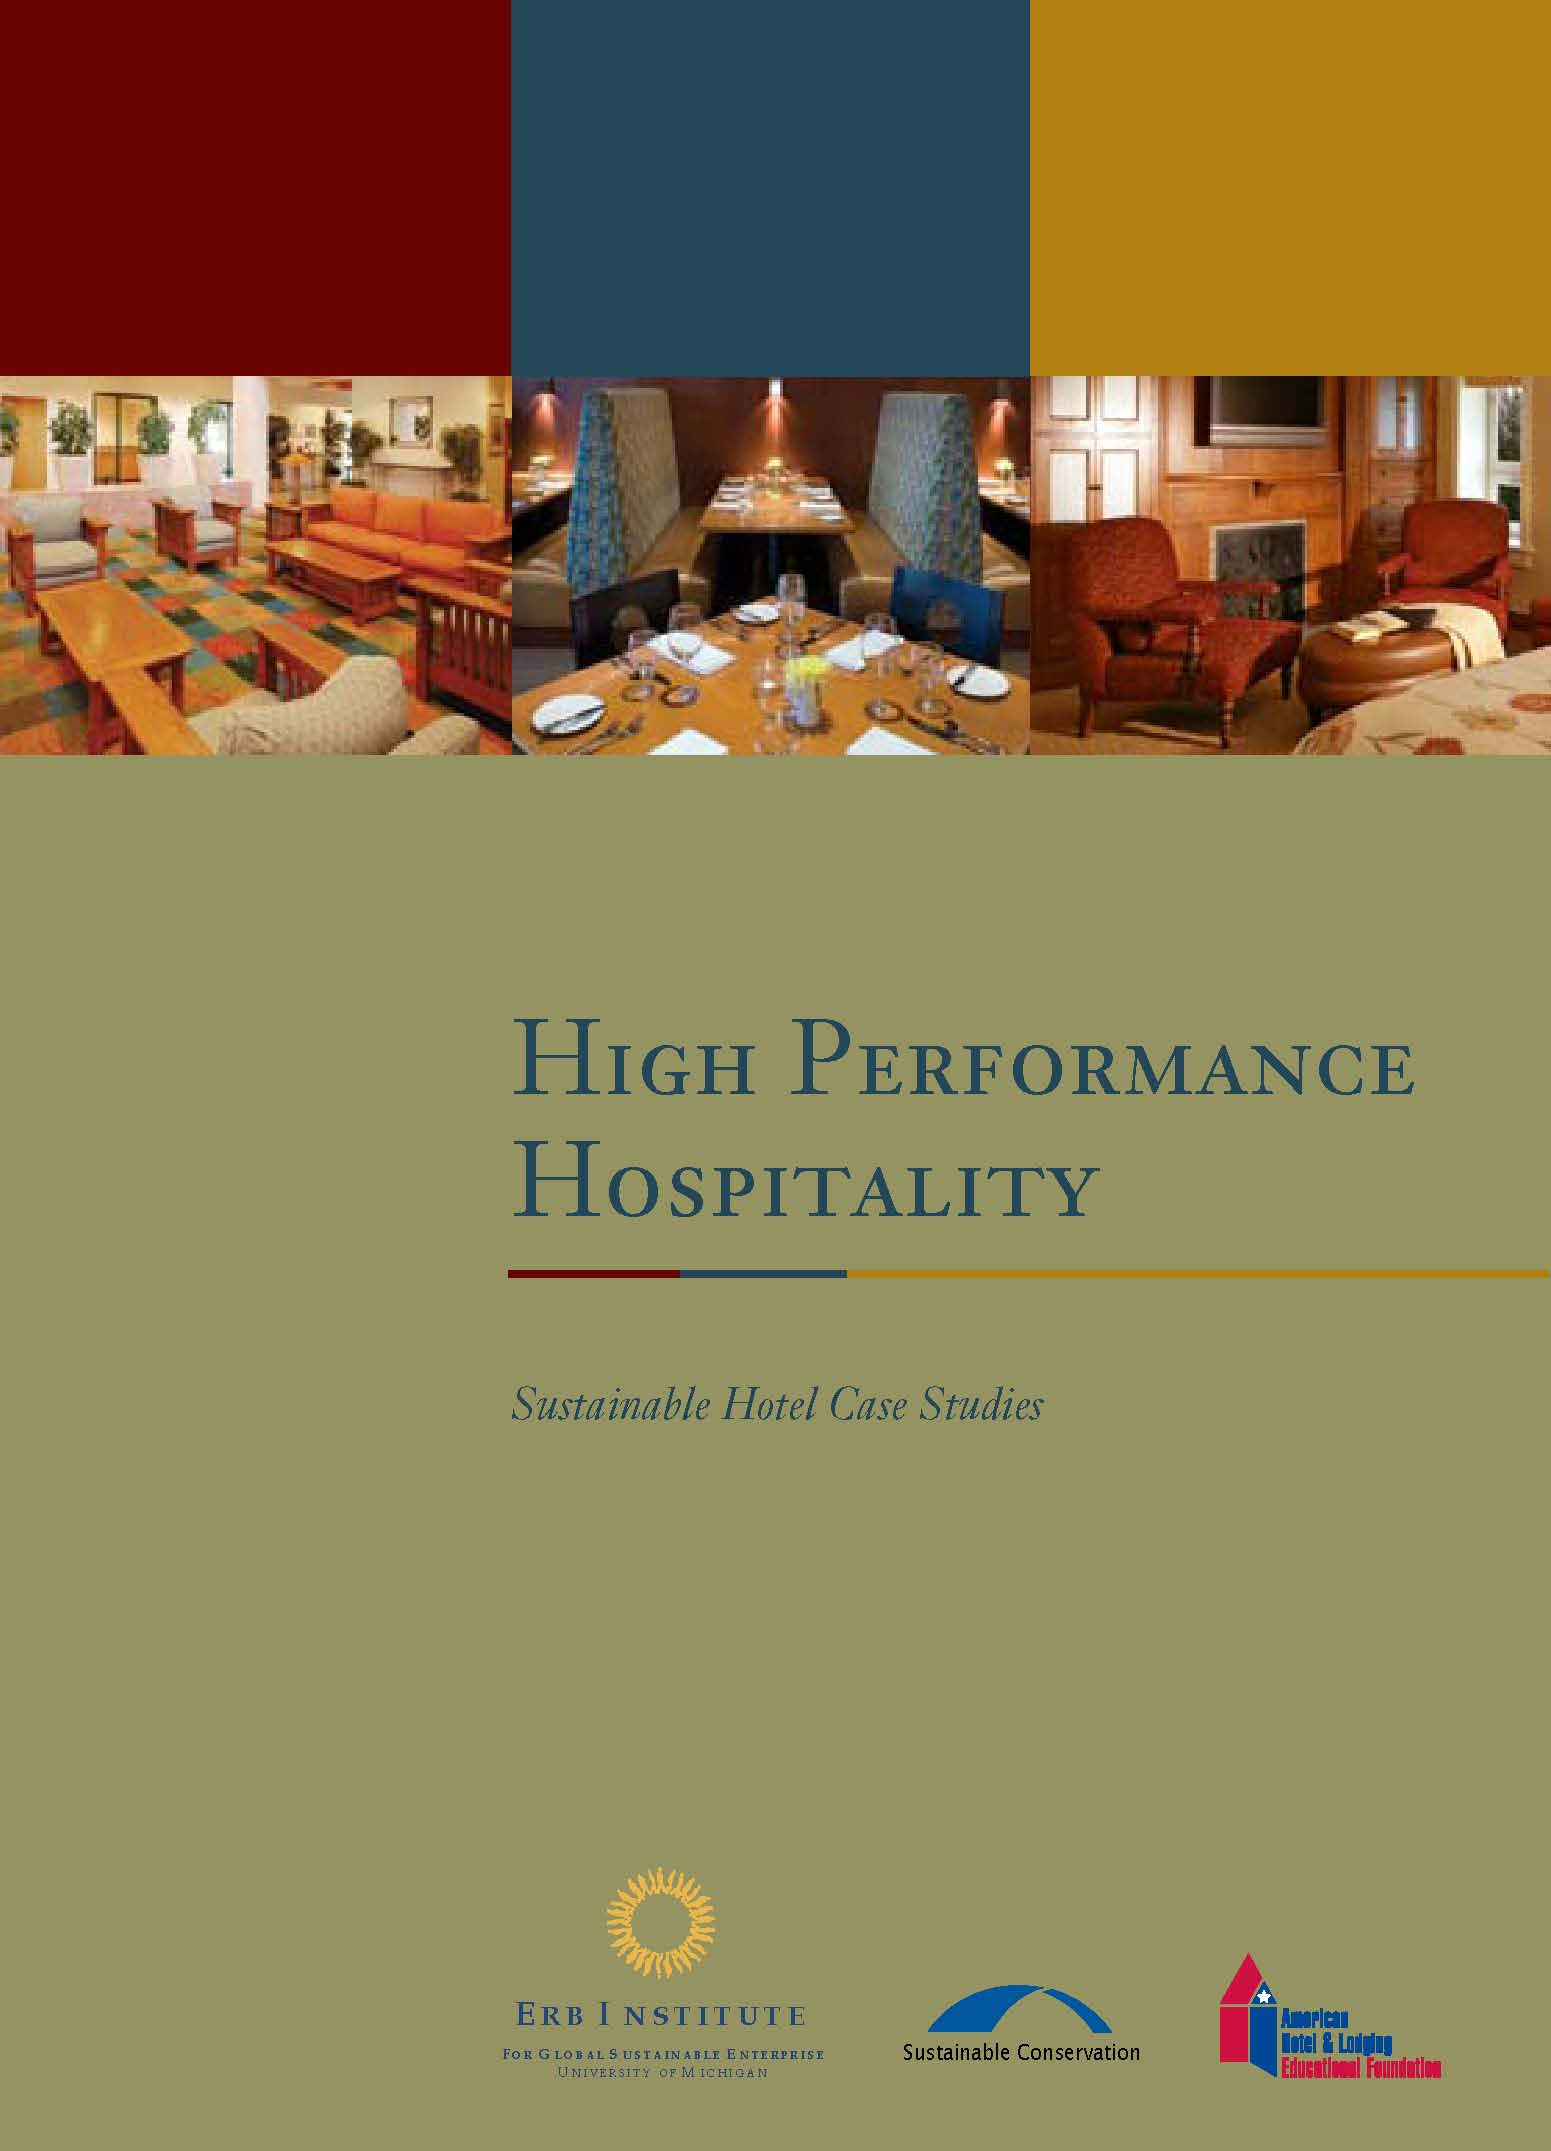 Our Hospitality Management Case Studies